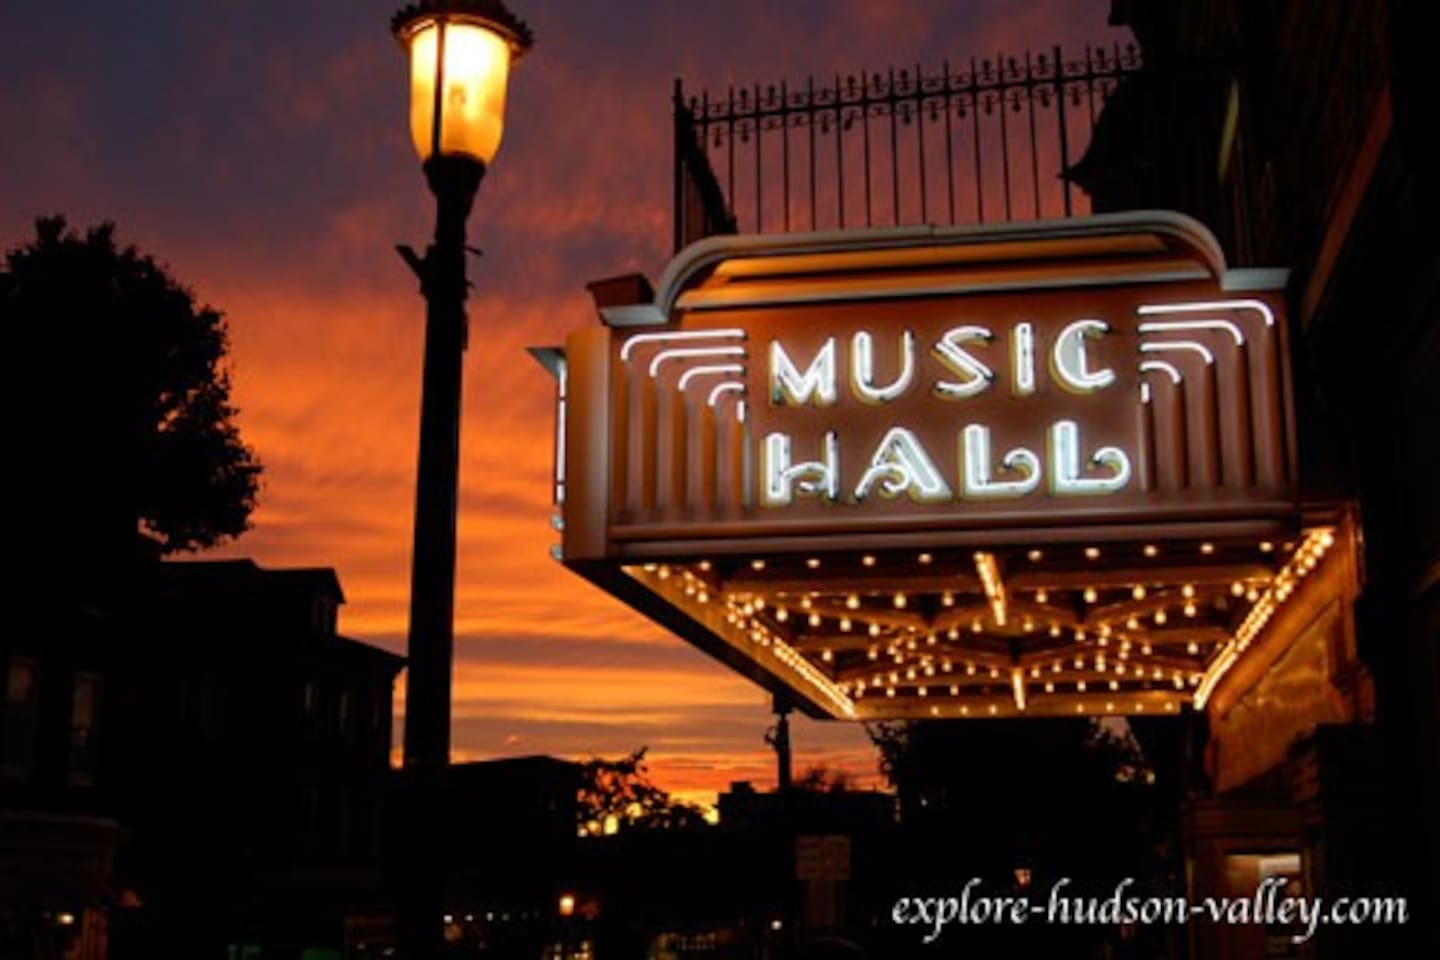 the picturesque Music Hall